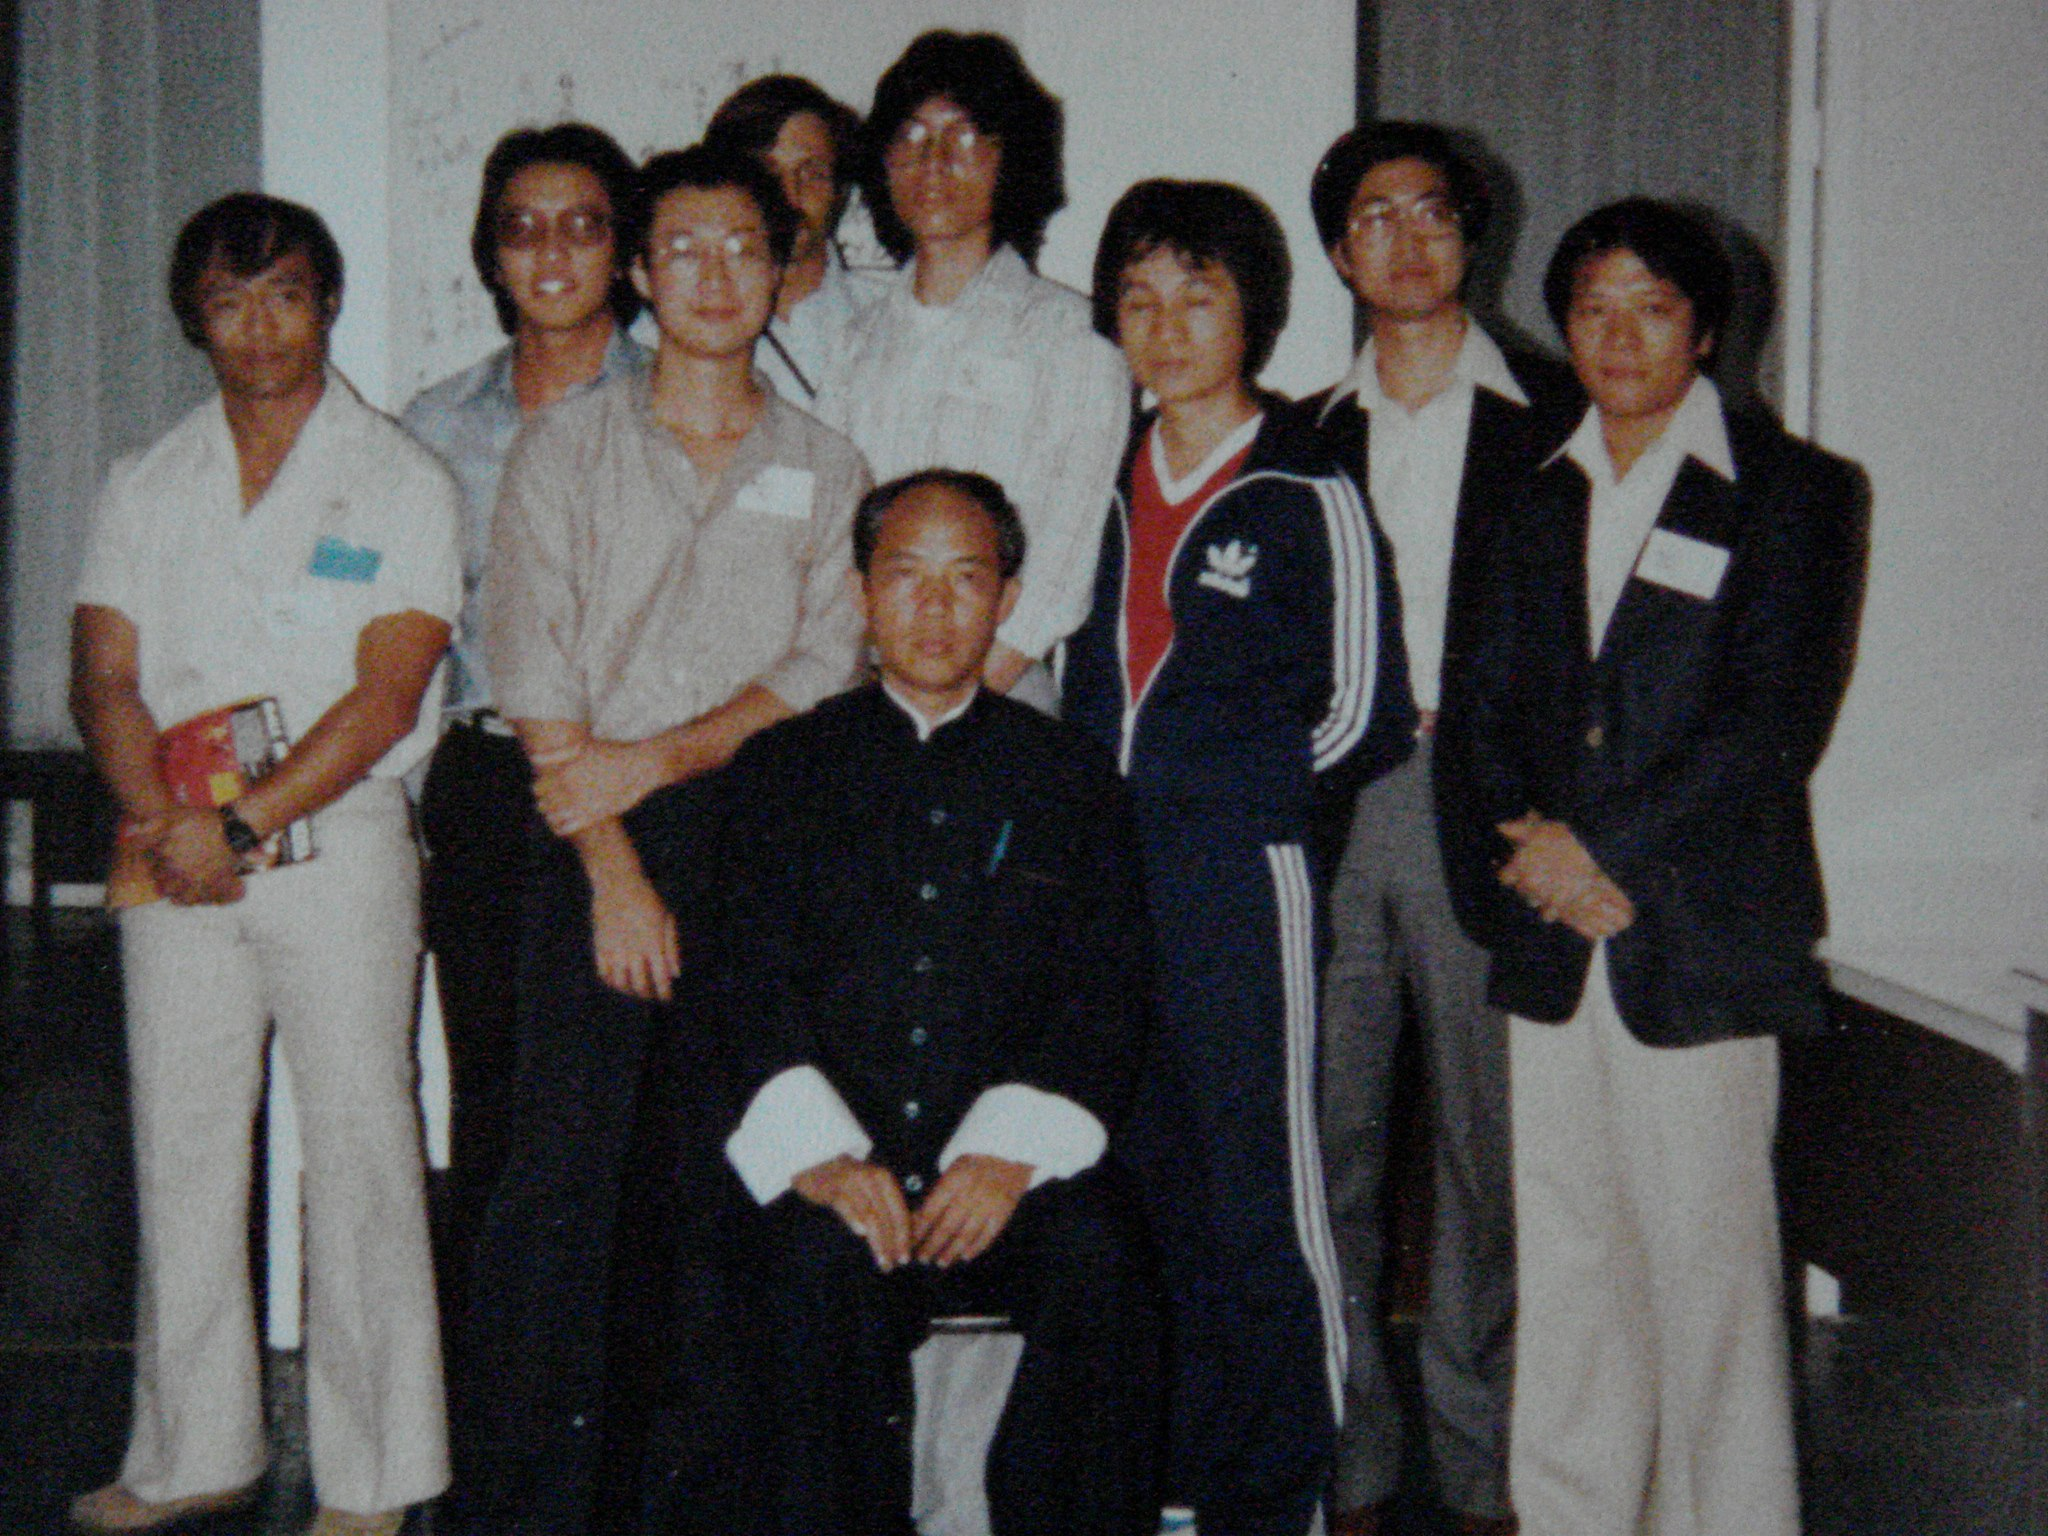 Grand Master Moy Yat and students